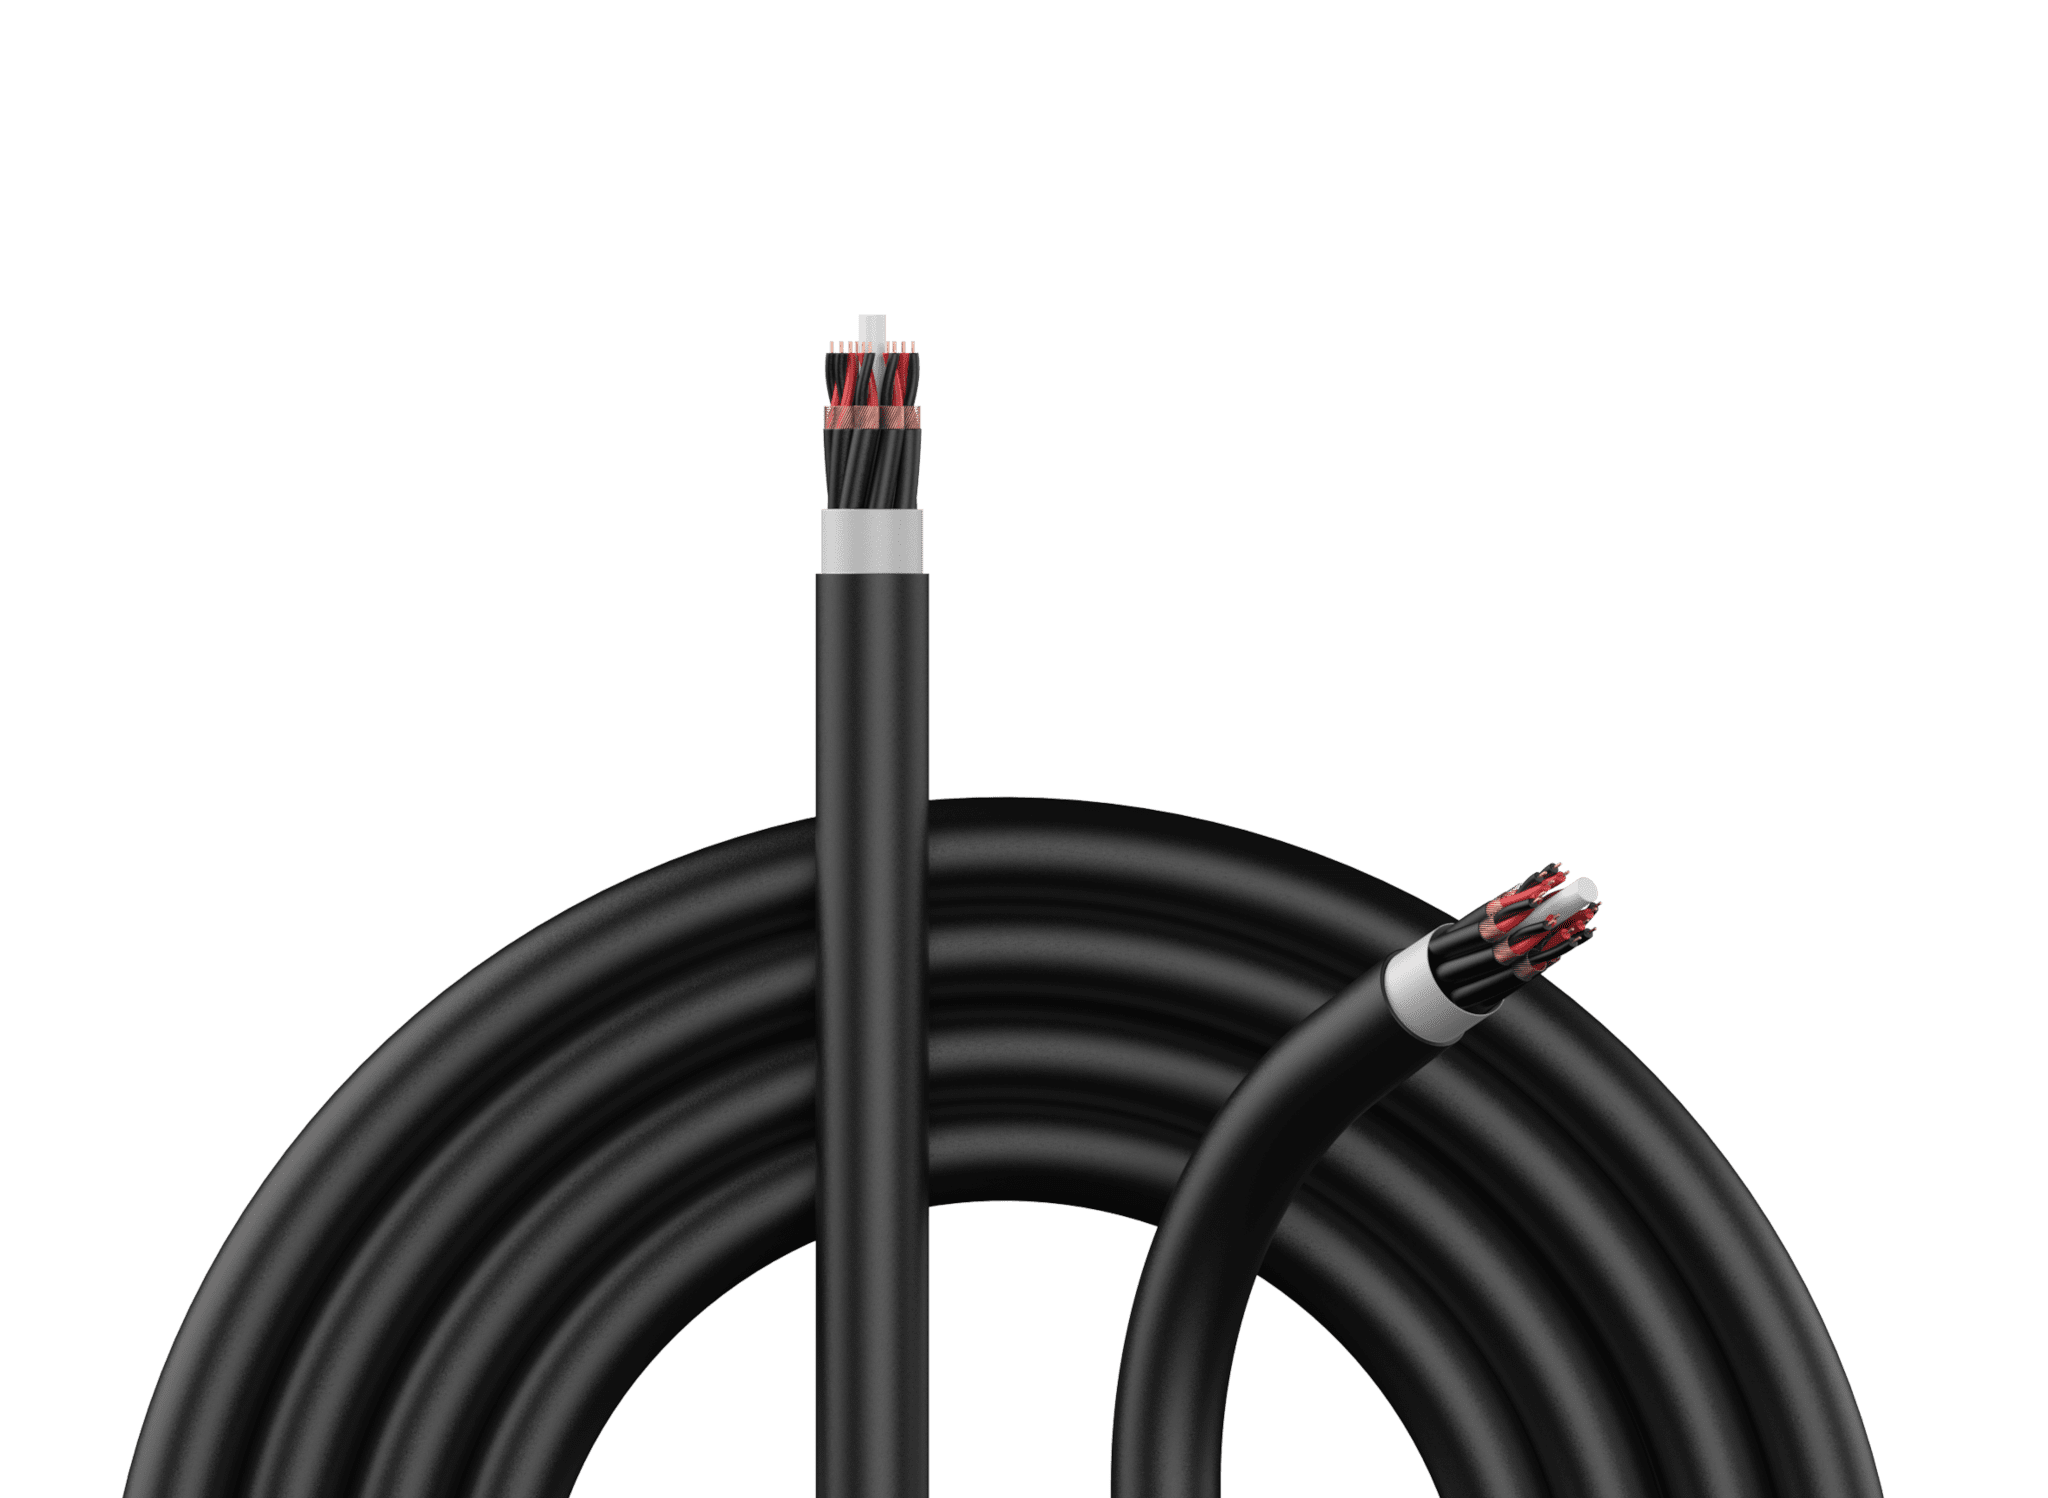 Signal multicore cables